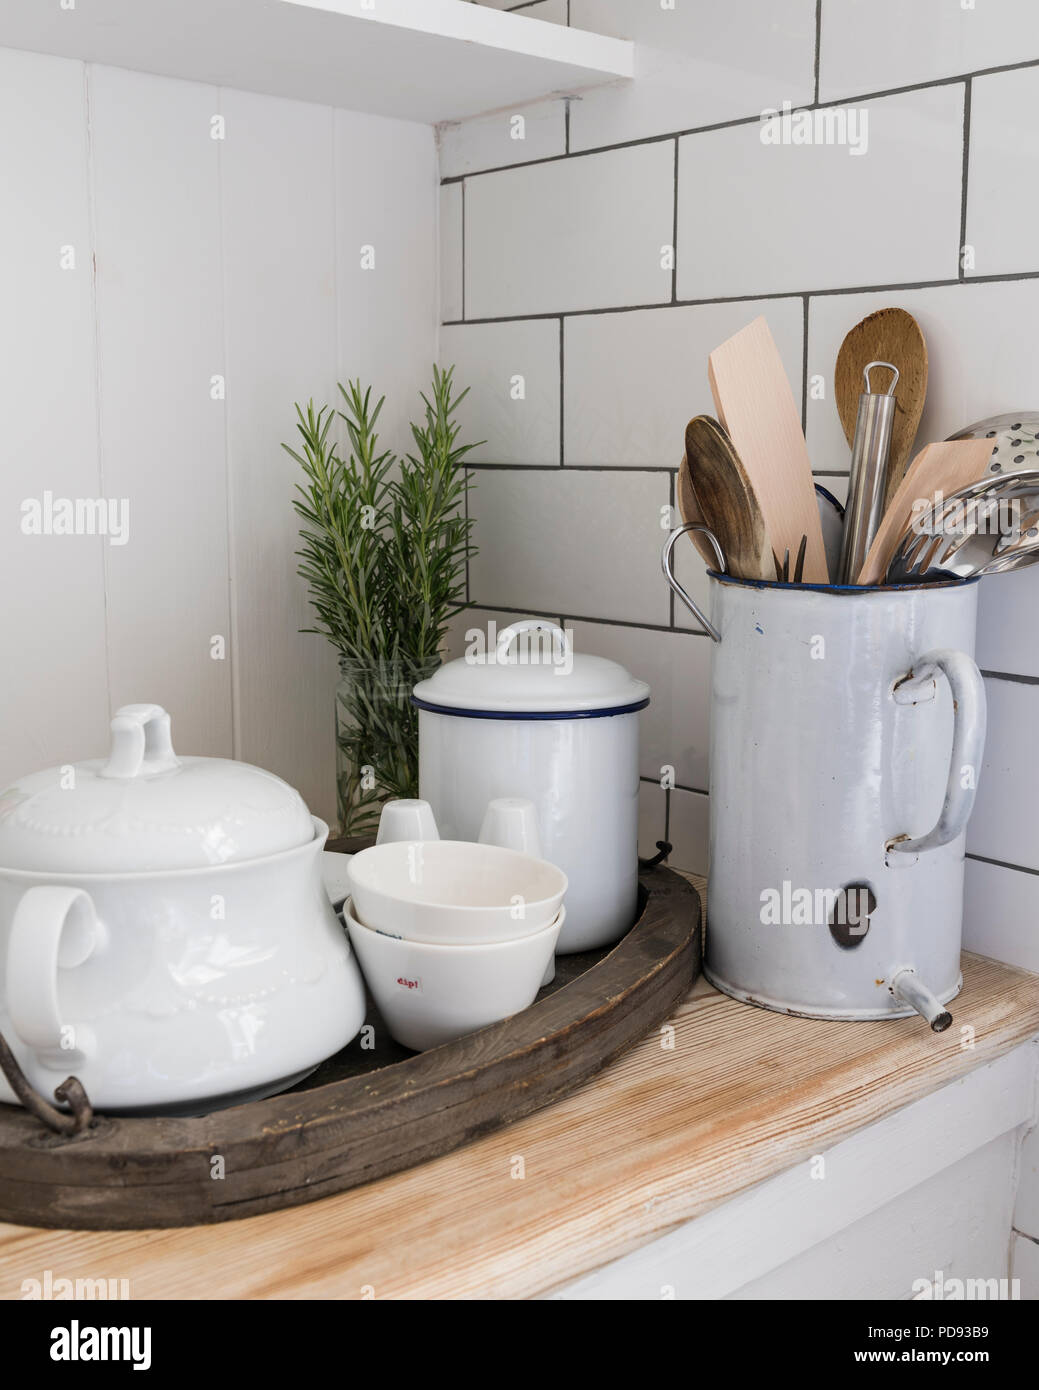 Detail of enamelware and cooking utensils - Stock Image